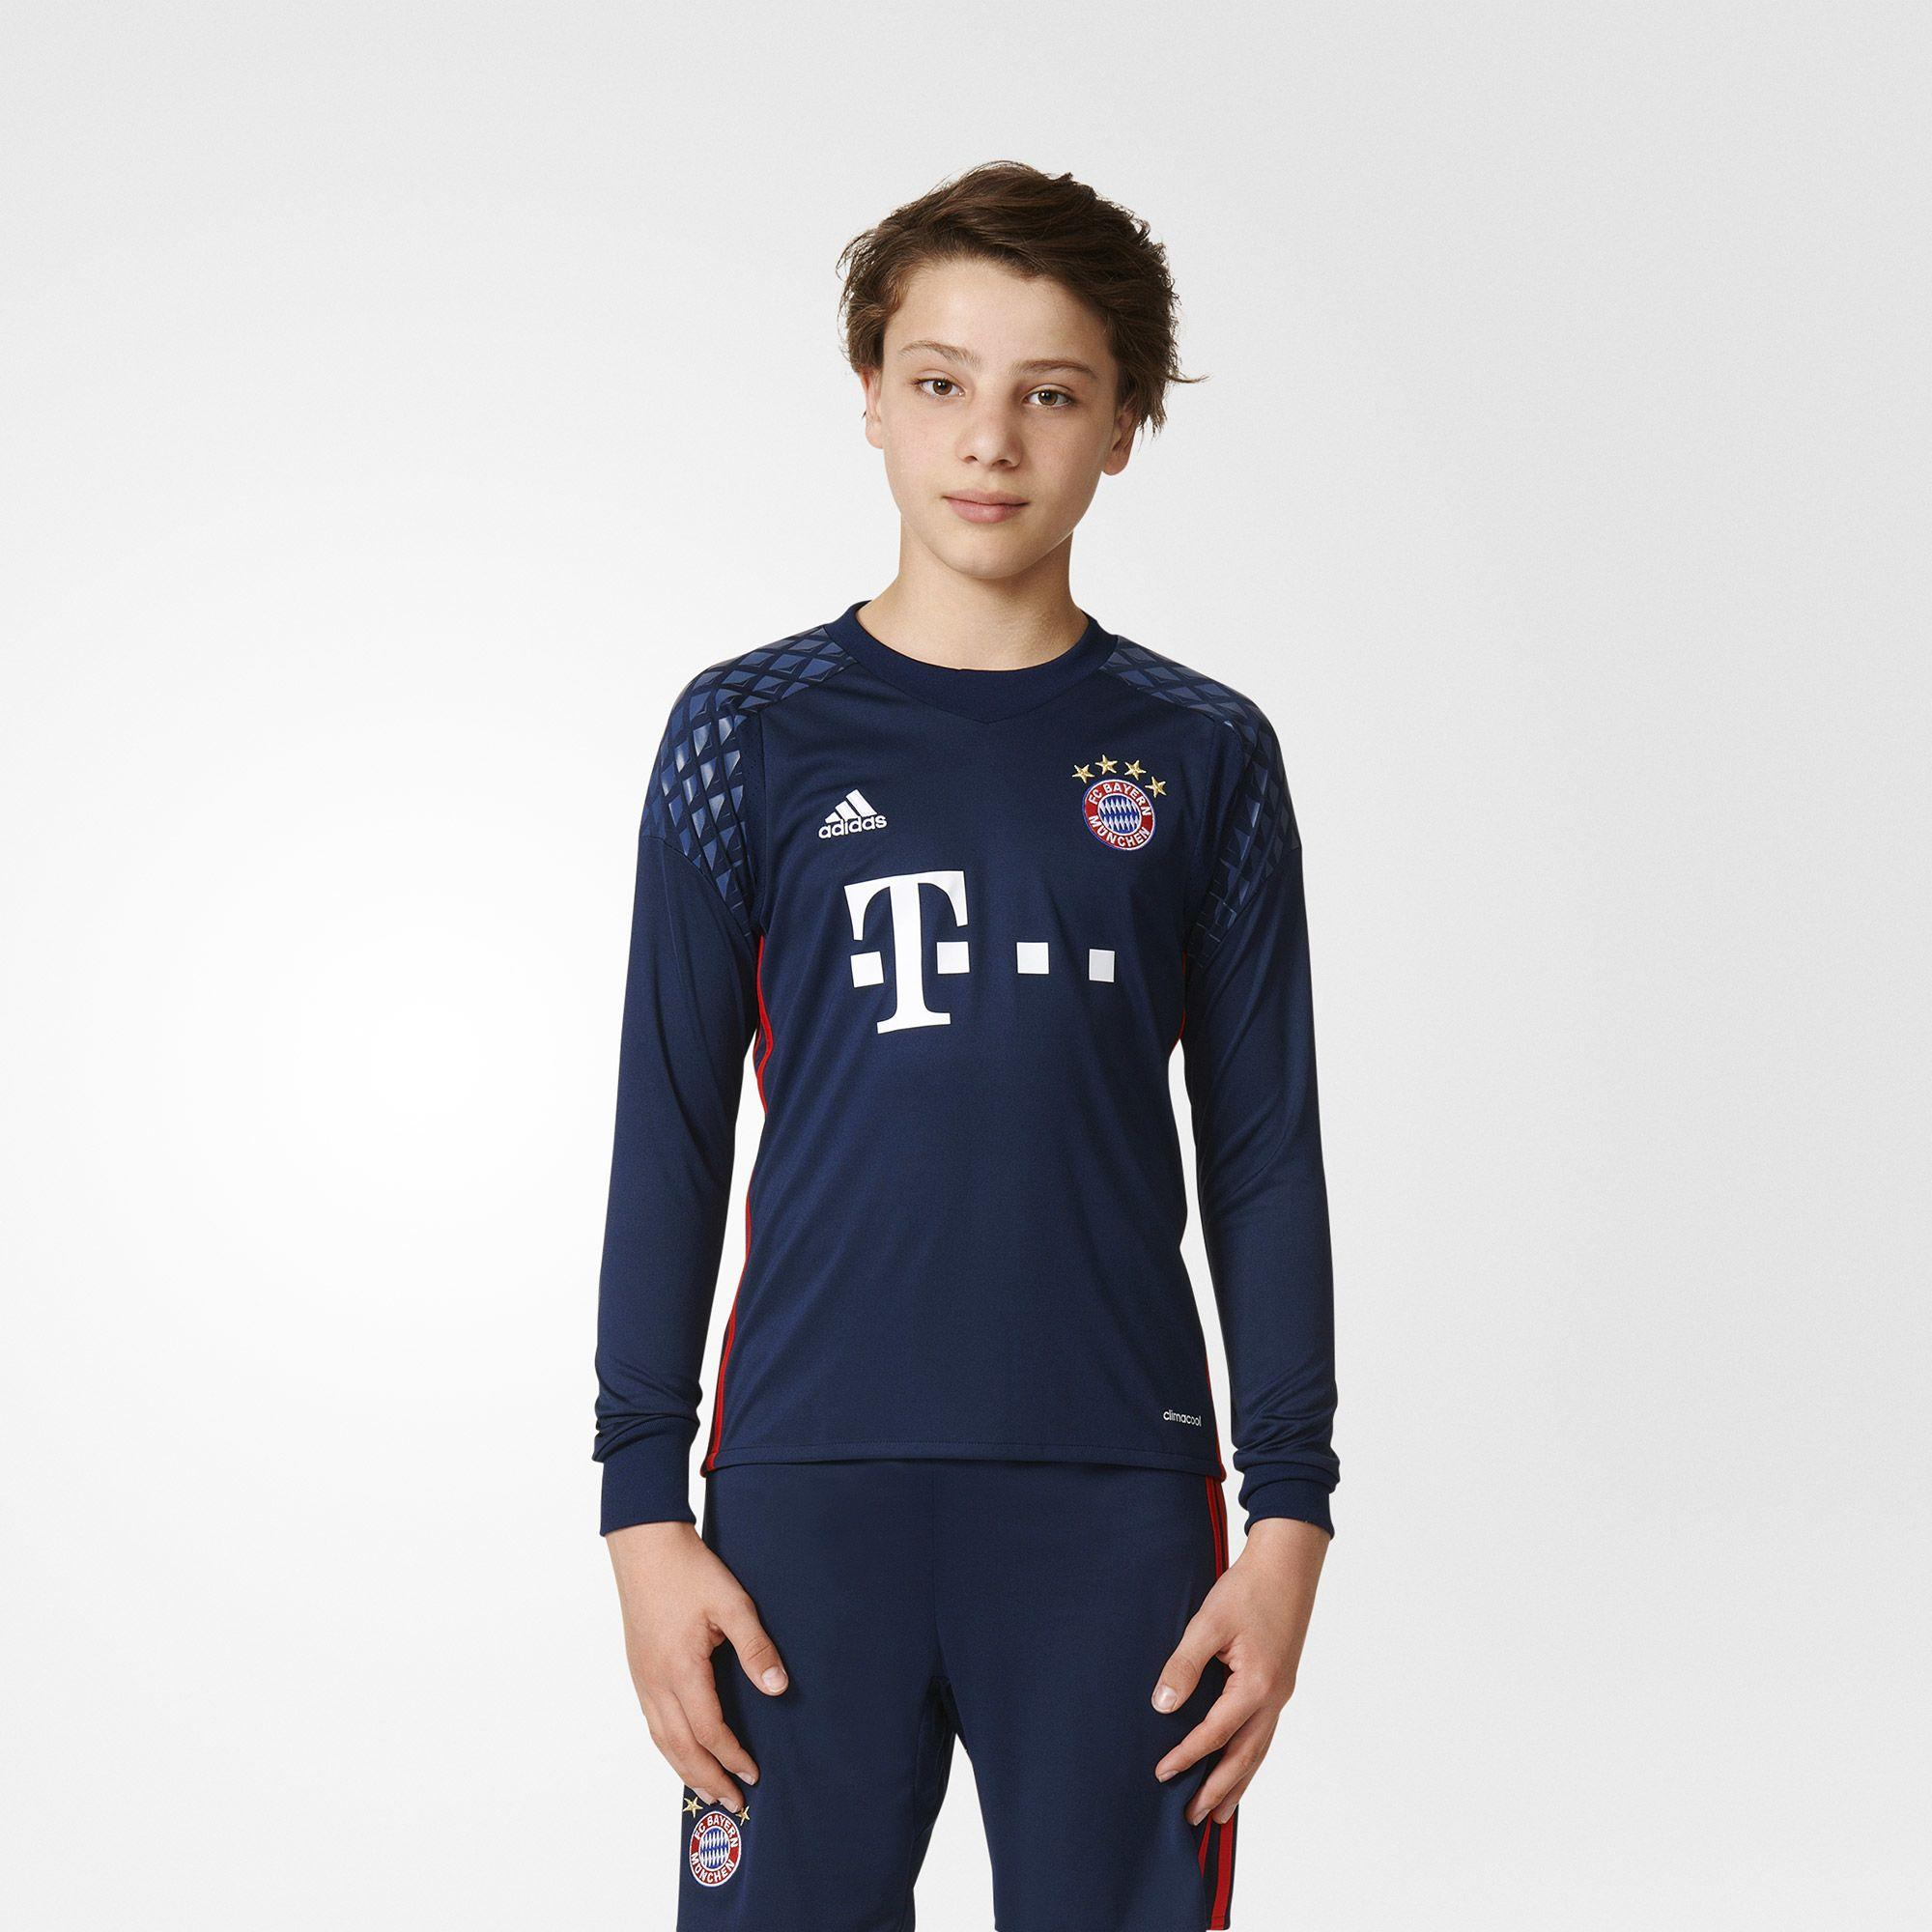 adidas kinder fc bayern m nchen torwart heimtrikot replica ebay. Black Bedroom Furniture Sets. Home Design Ideas